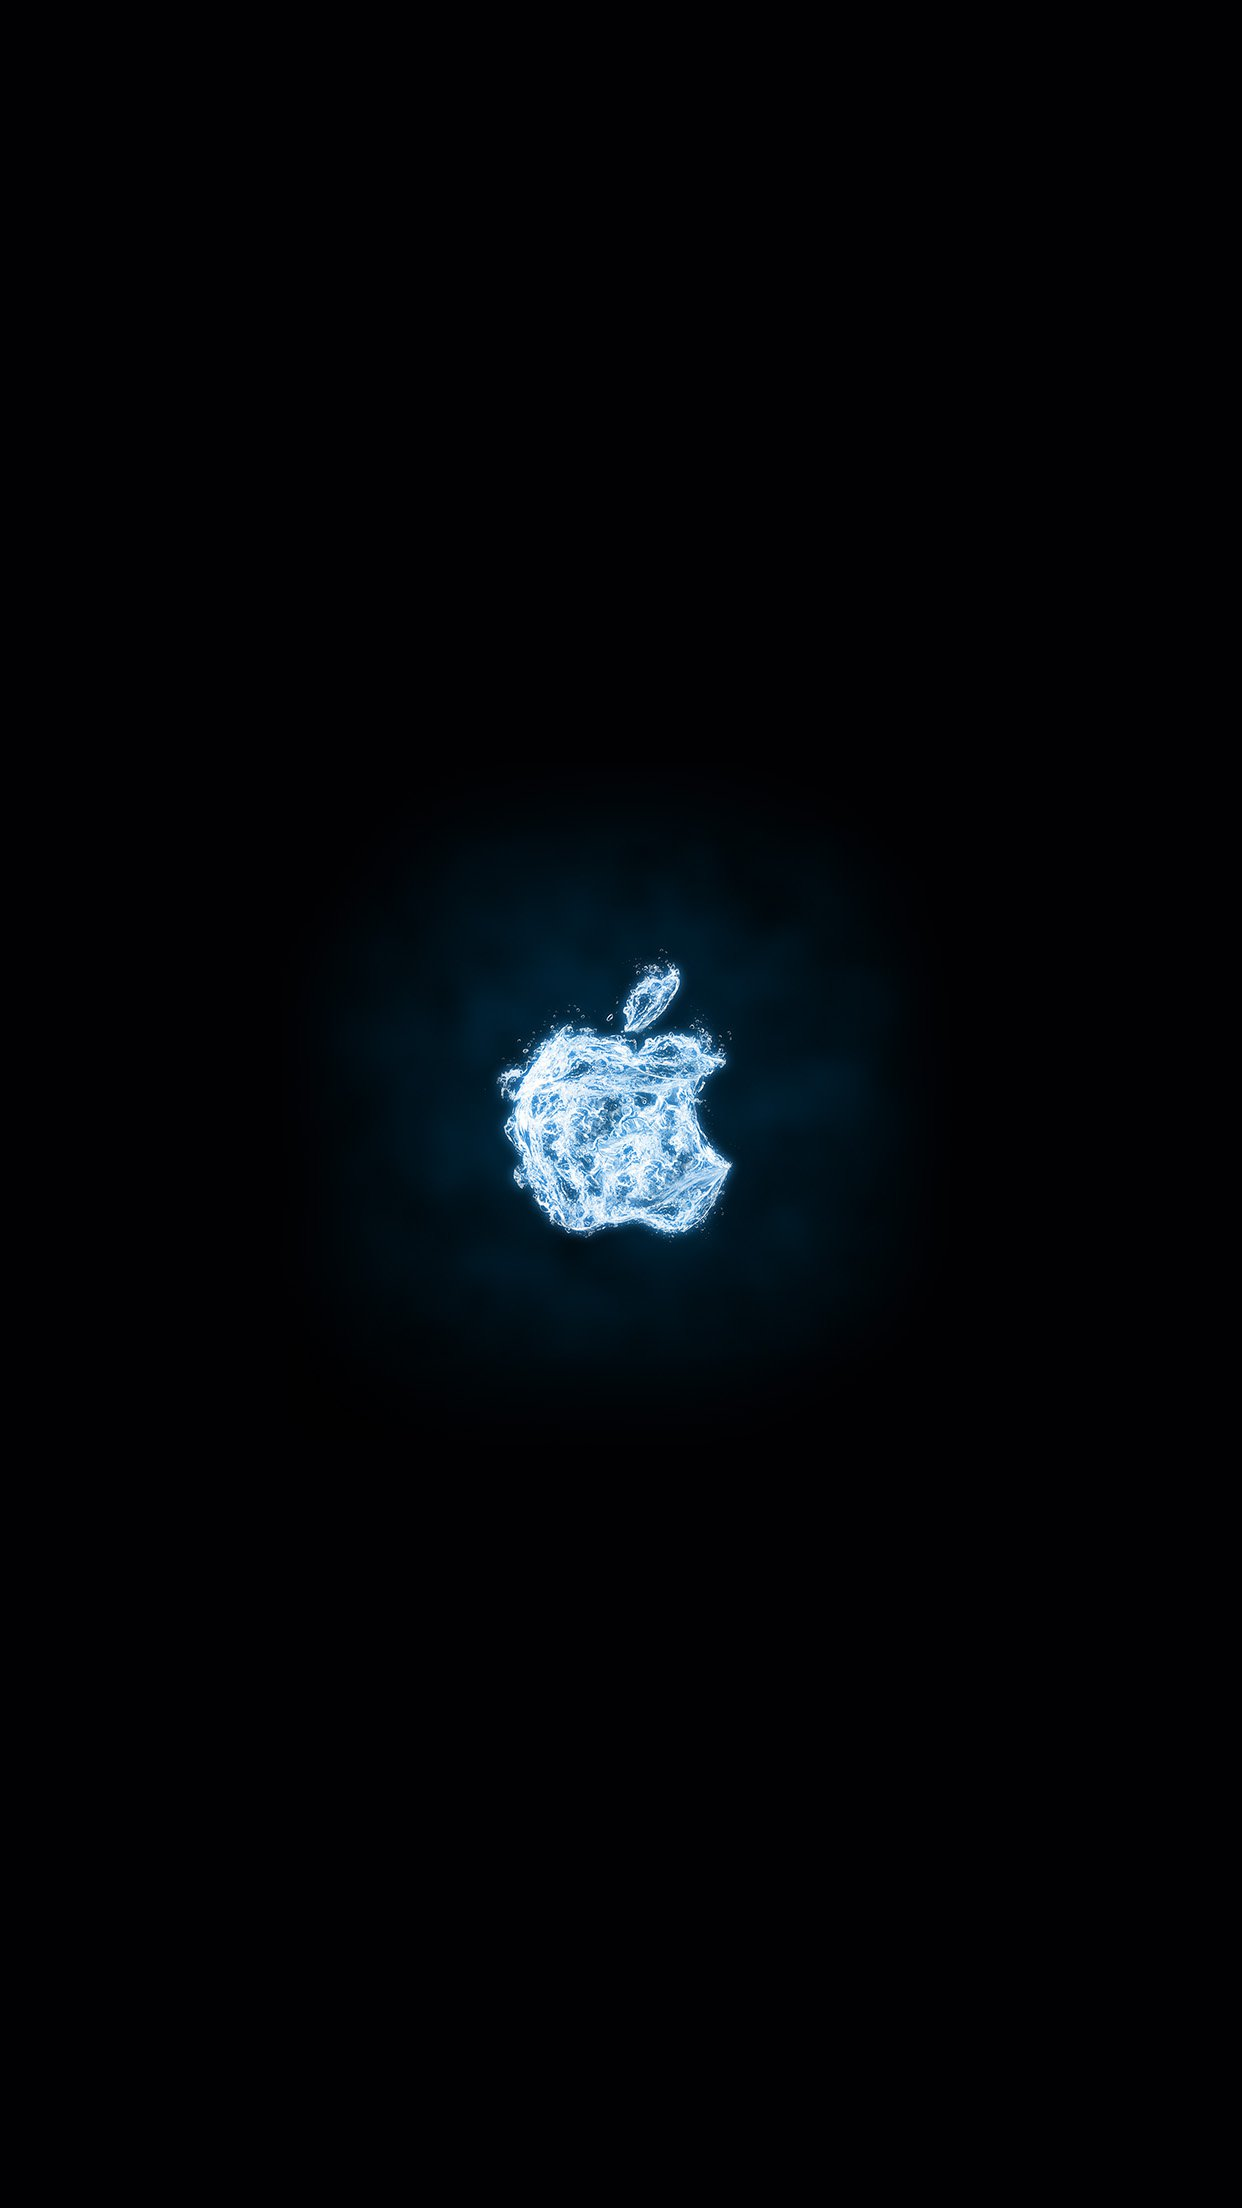 apple logo dark water blue art illustration android wallpaper android hd wallpapers